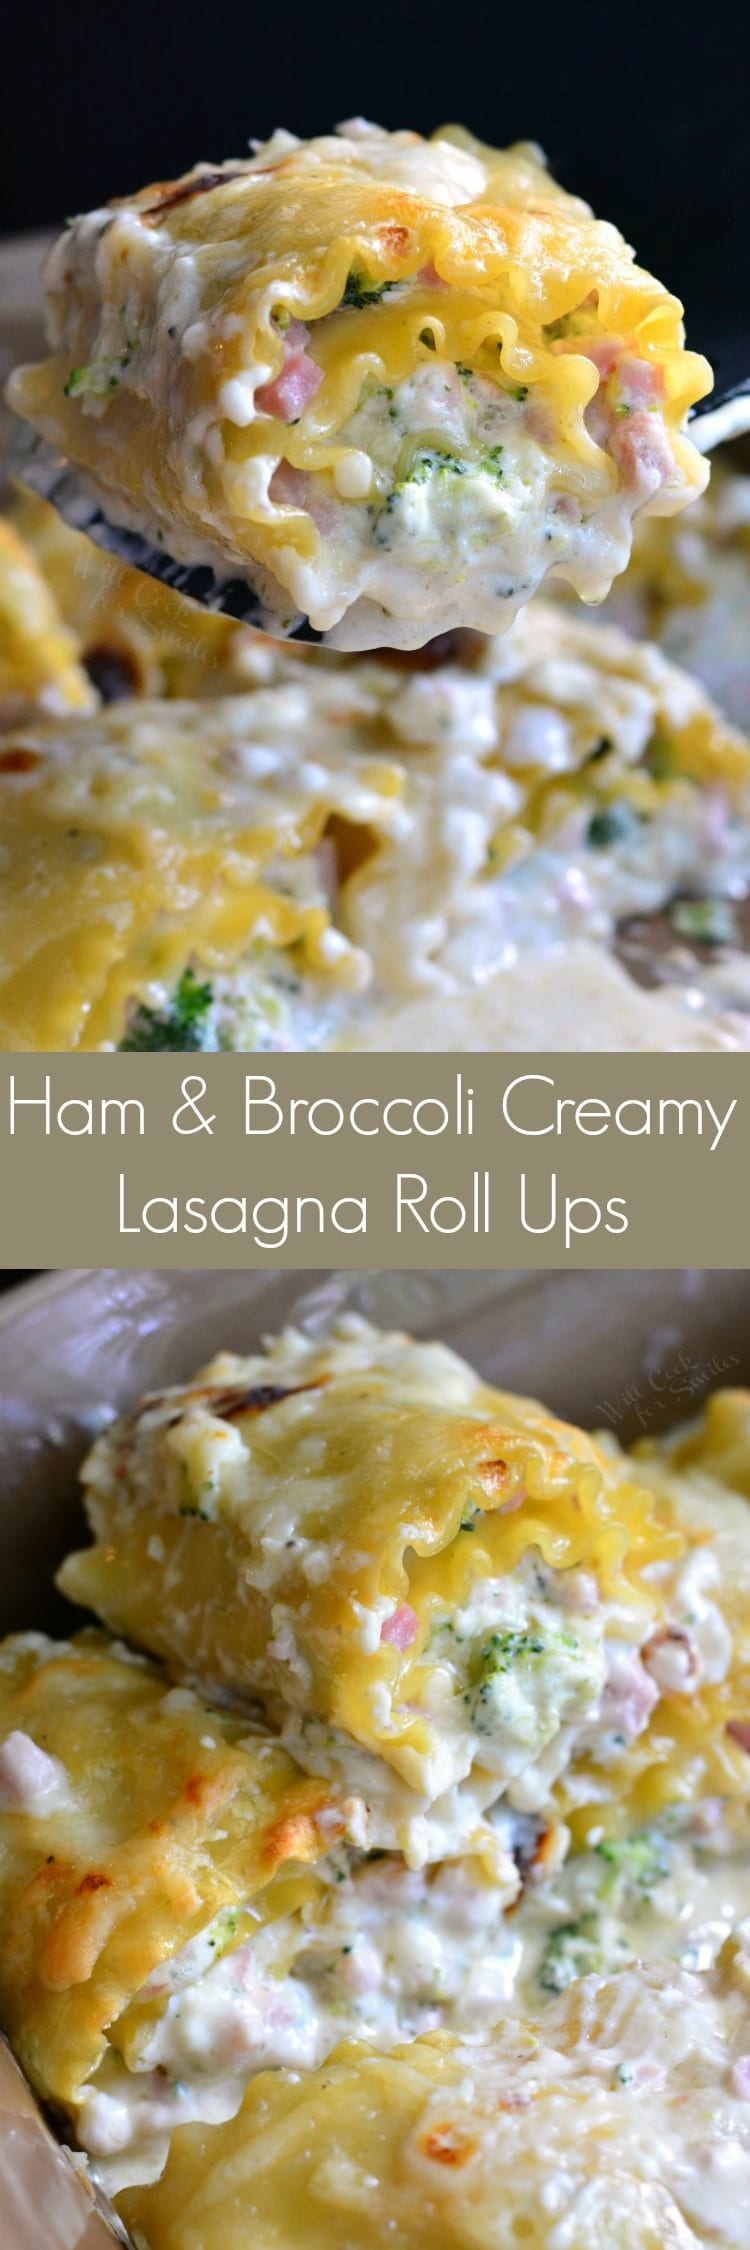 Ham and Broccoli Creamy Lasagna Roll Ups. They are made with a creamy, cheesy mixture, packed with ham and broccoli, and topped with a cheesy cream sauce.